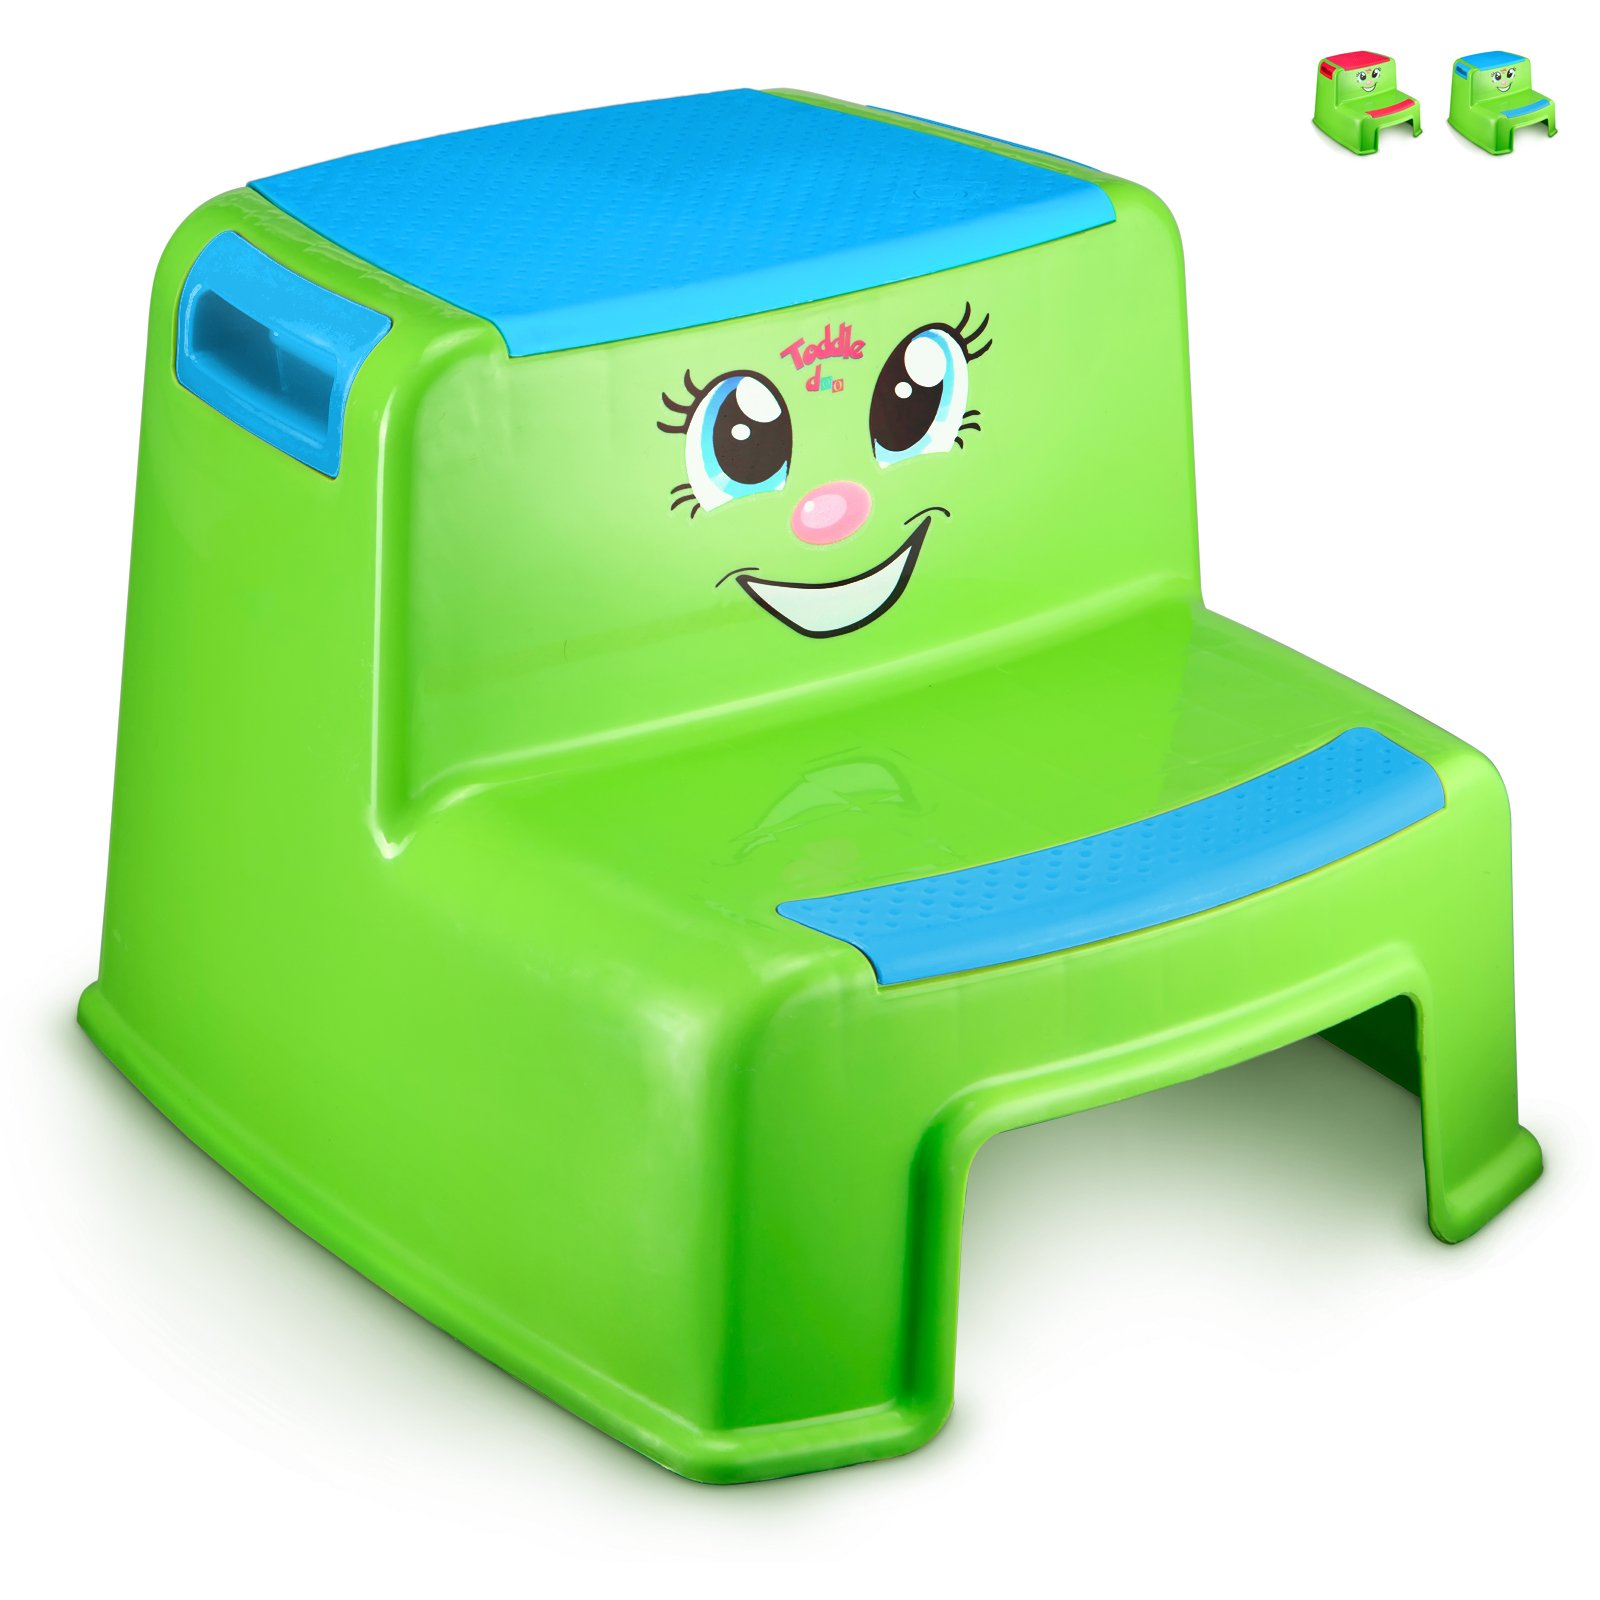 Amazing Step Stools For Kids Toddlers Potty Step Stool For Toilet Training Dual Height Two Step Stairs Stool Cute Design For Use In Bathroom And Kitchen Gmtry Best Dining Table And Chair Ideas Images Gmtryco